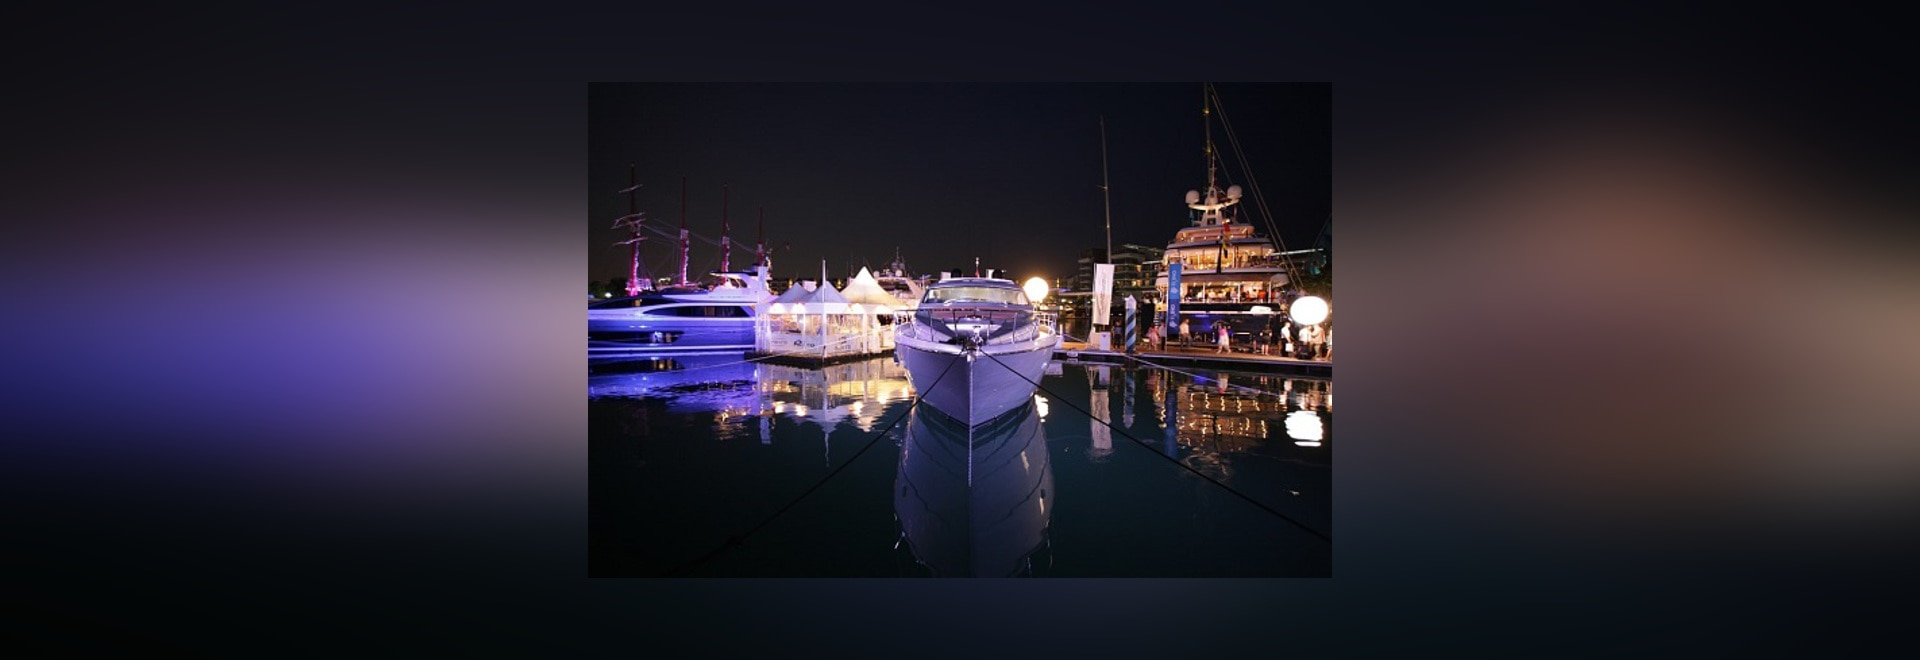 Momentum for the Singapore Yacht Show 2015 continues to grow